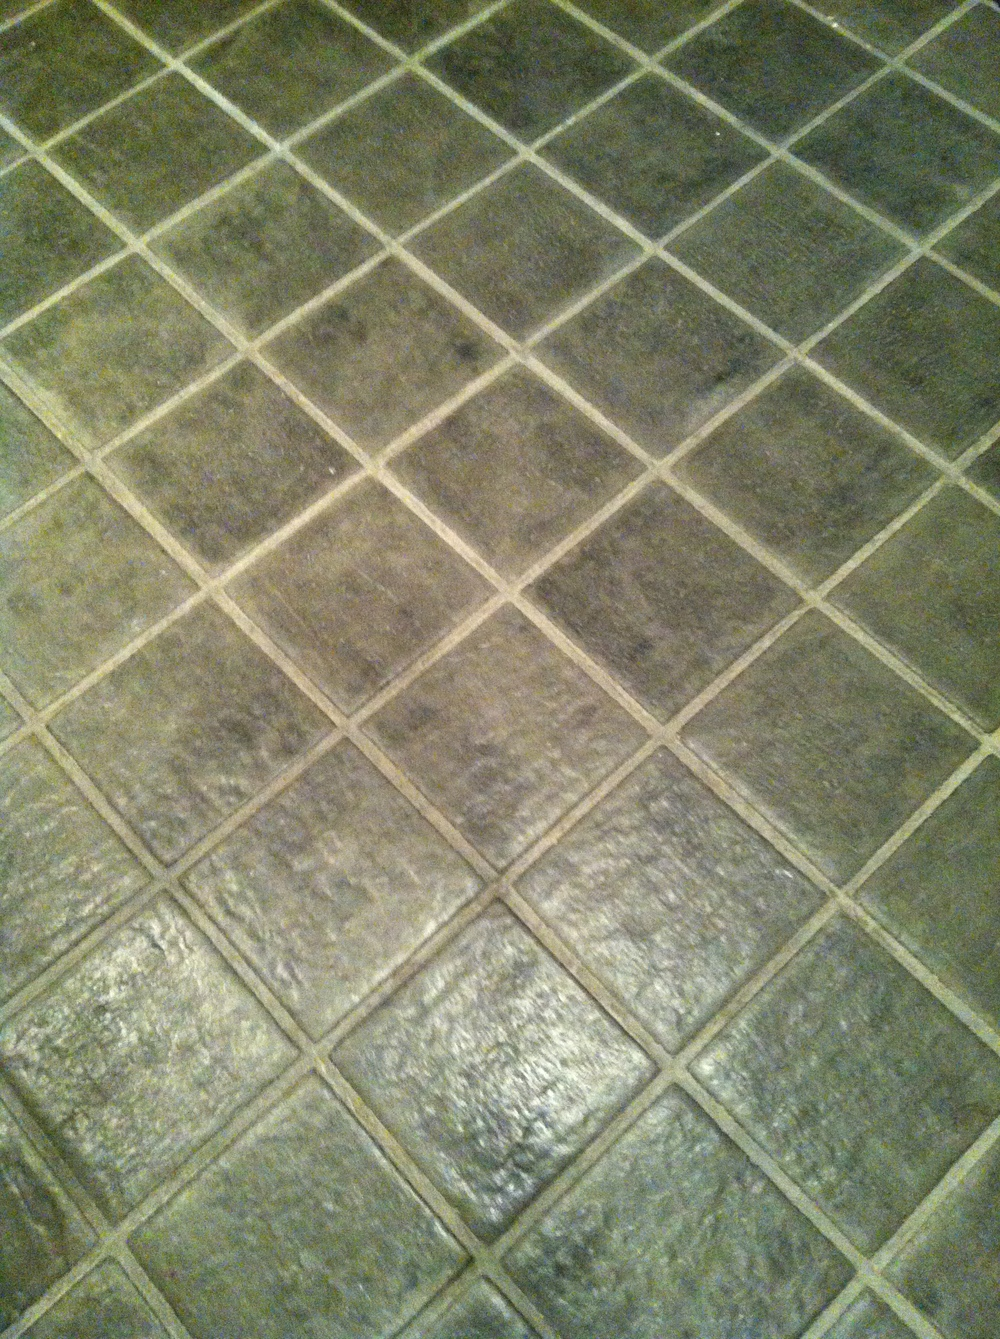 Black Tile Floor.JPG